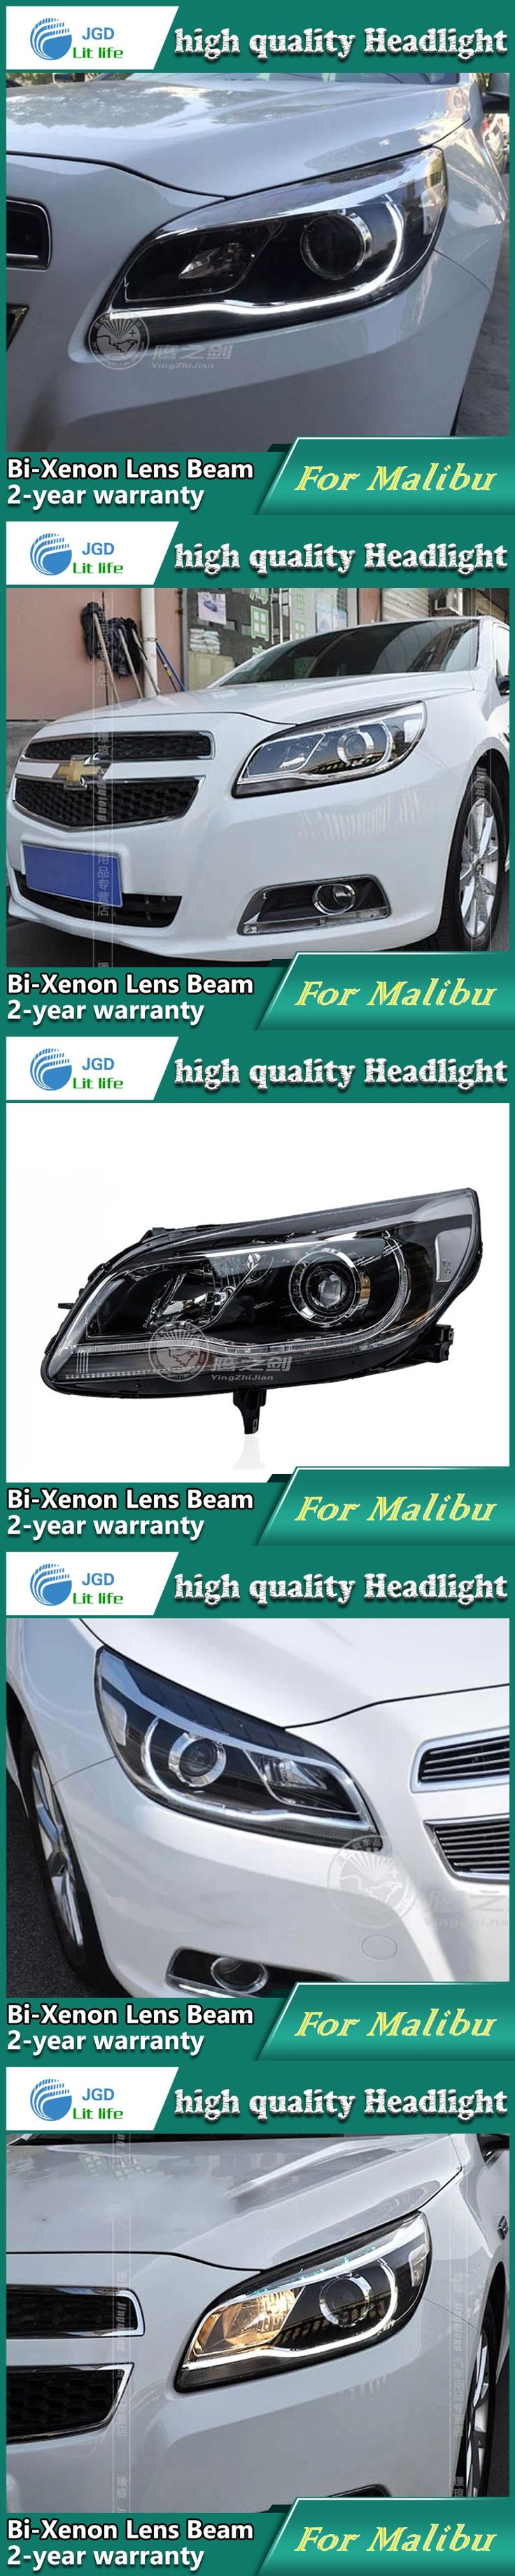 high quality Car styling case for Chevrolet Malibu 2013 Headlights LED Headlight DRL Lens Double Beam HID Xenon Car Accessories